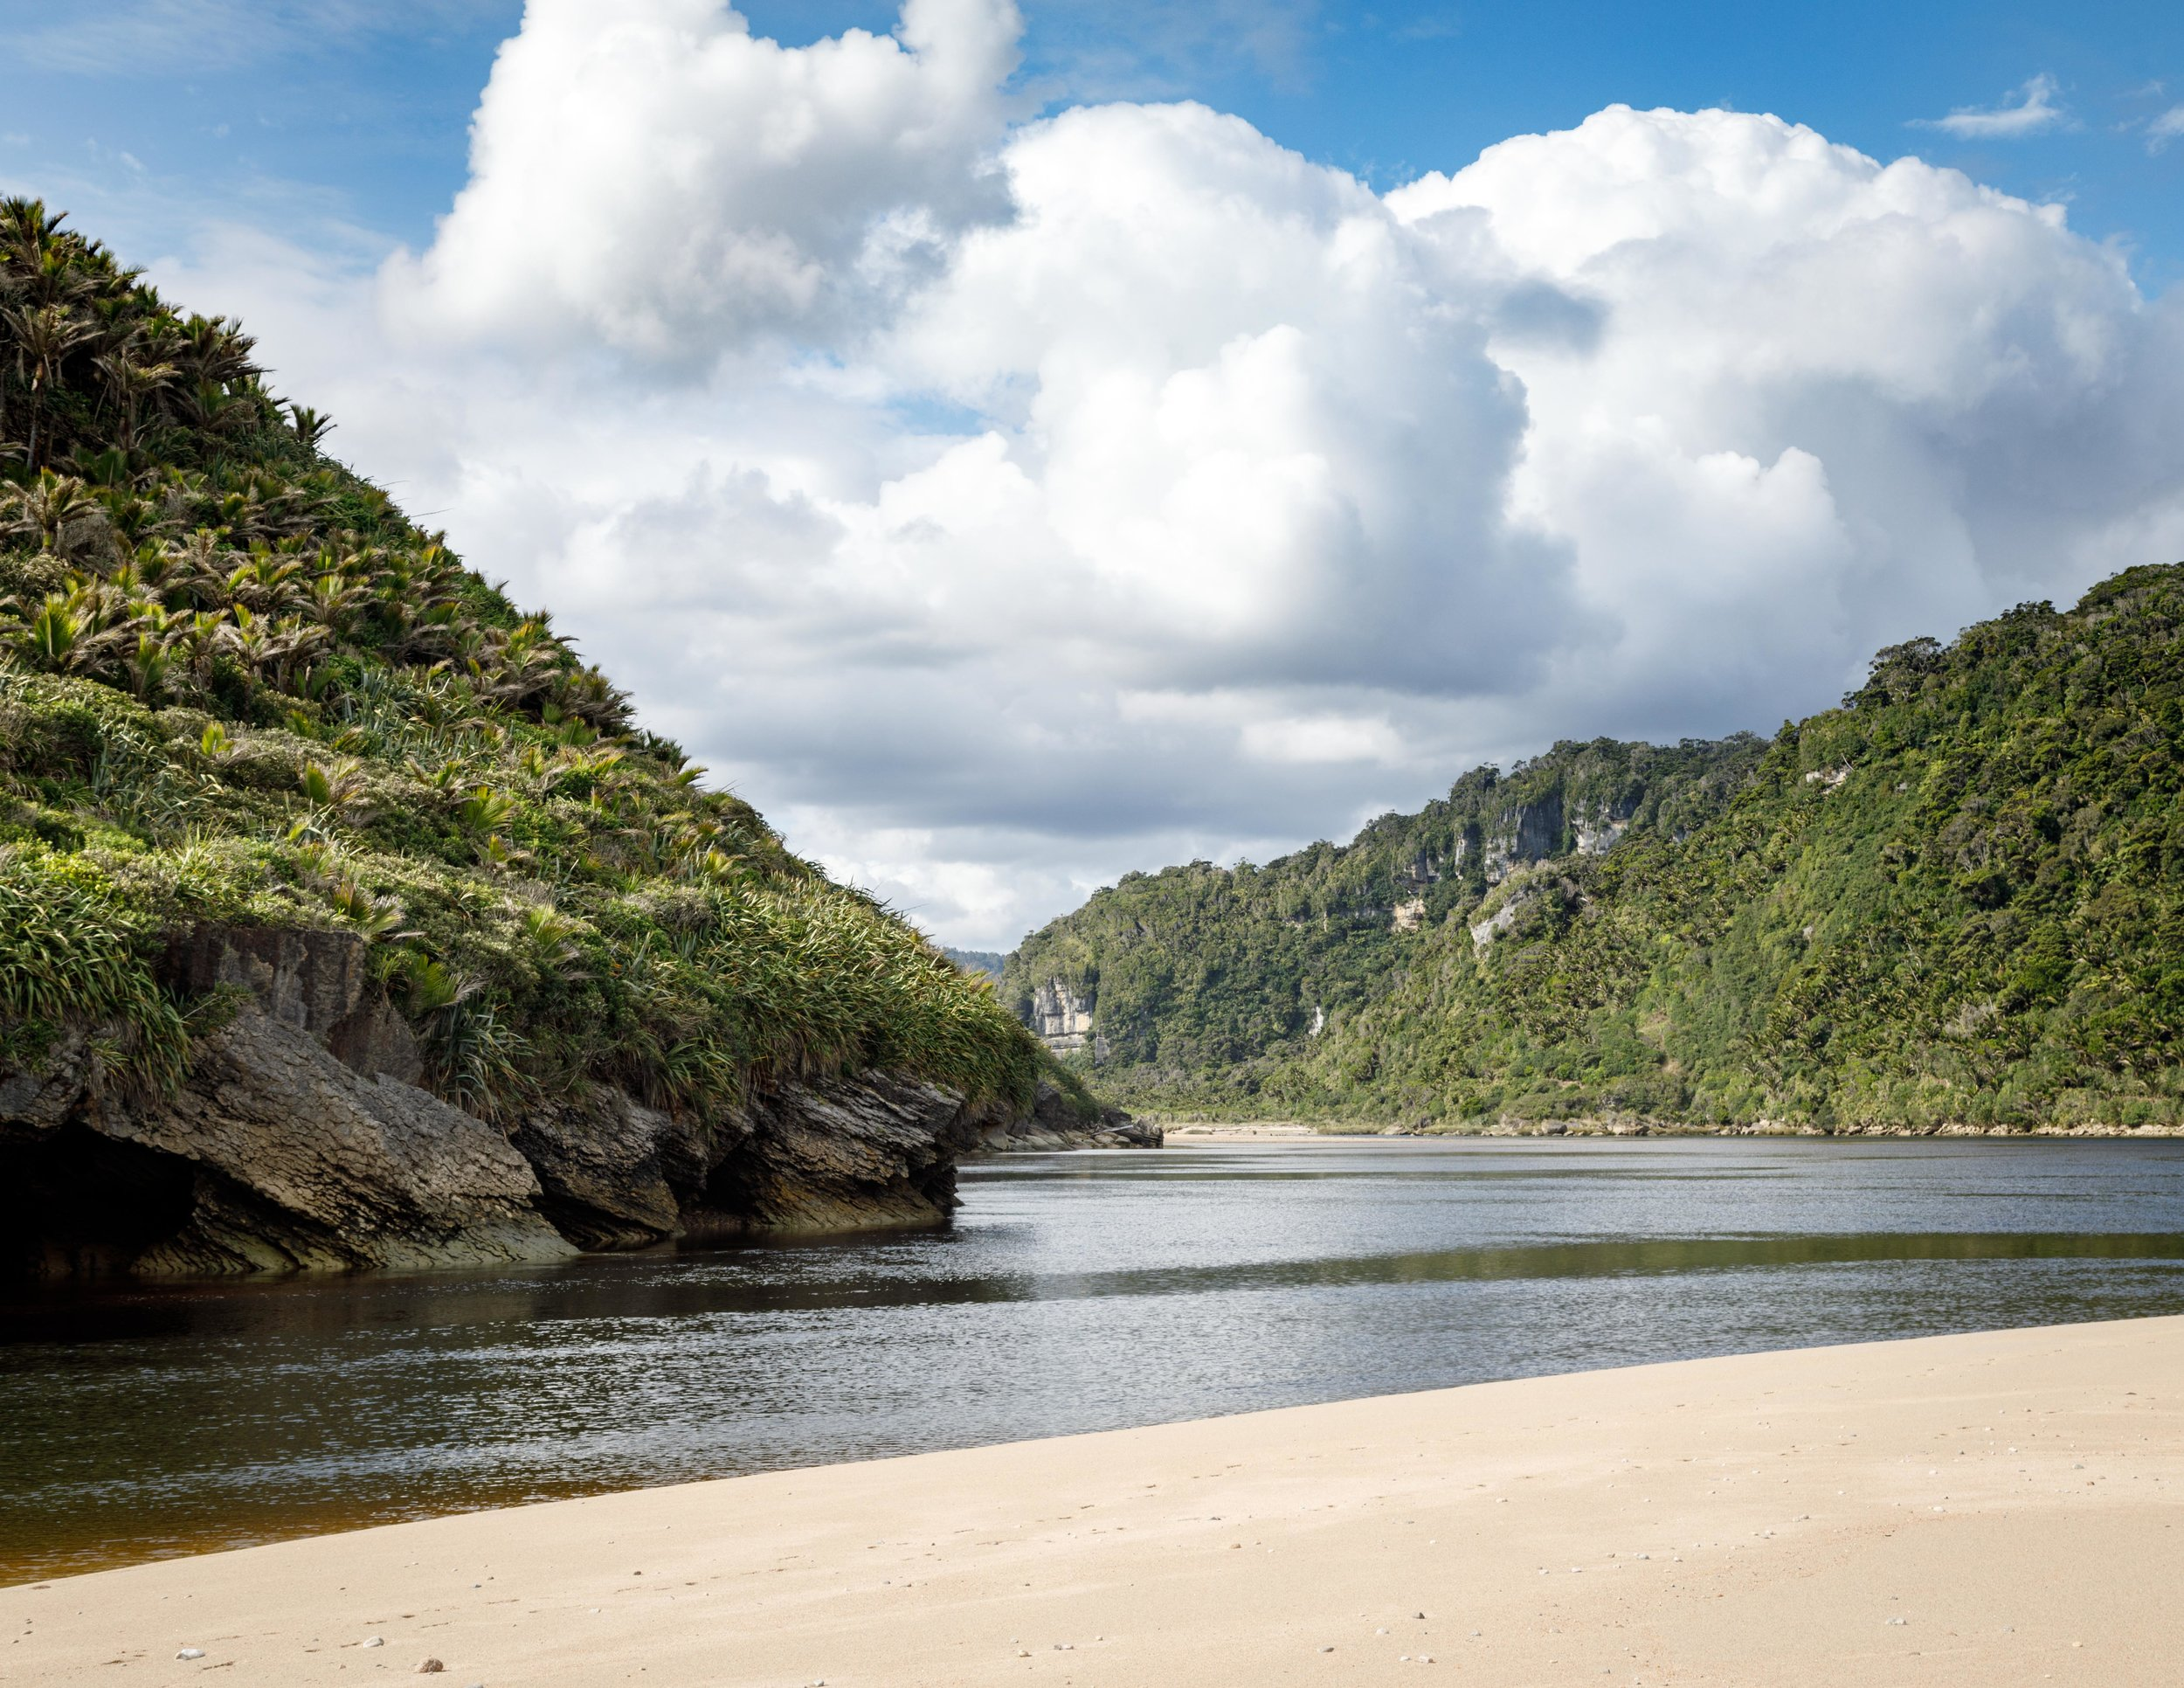 Heaphy River by Heaphy Hut on Heaphy Track